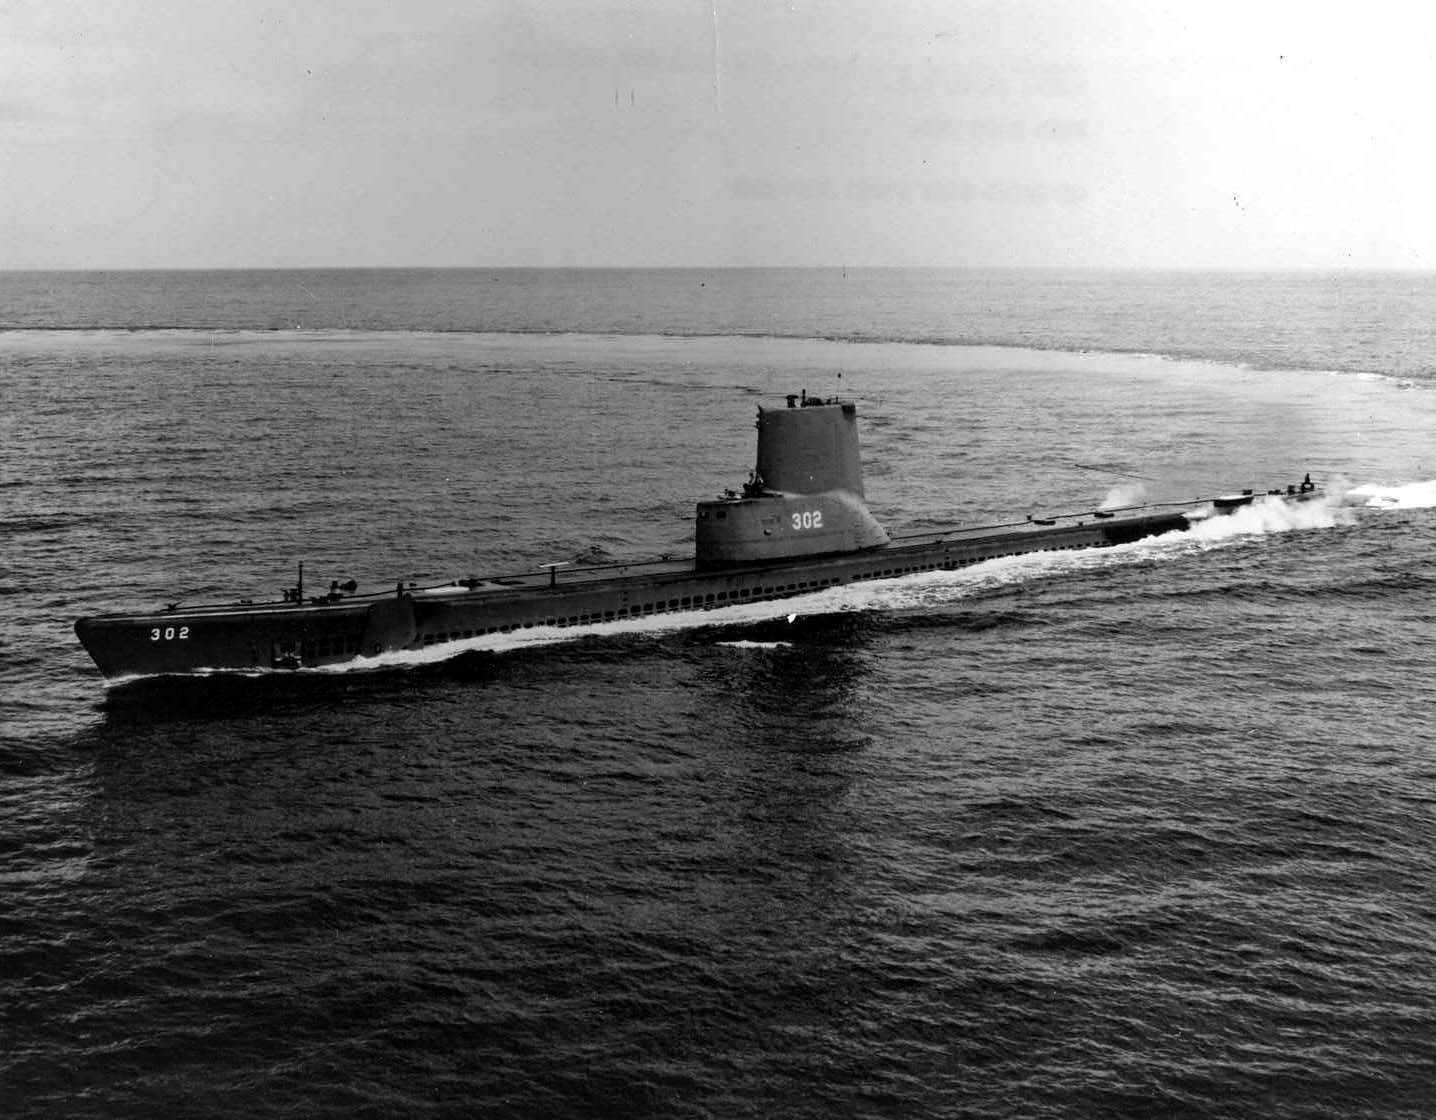 SS-302 submarine does a wide circle in the ocean trailing a wake